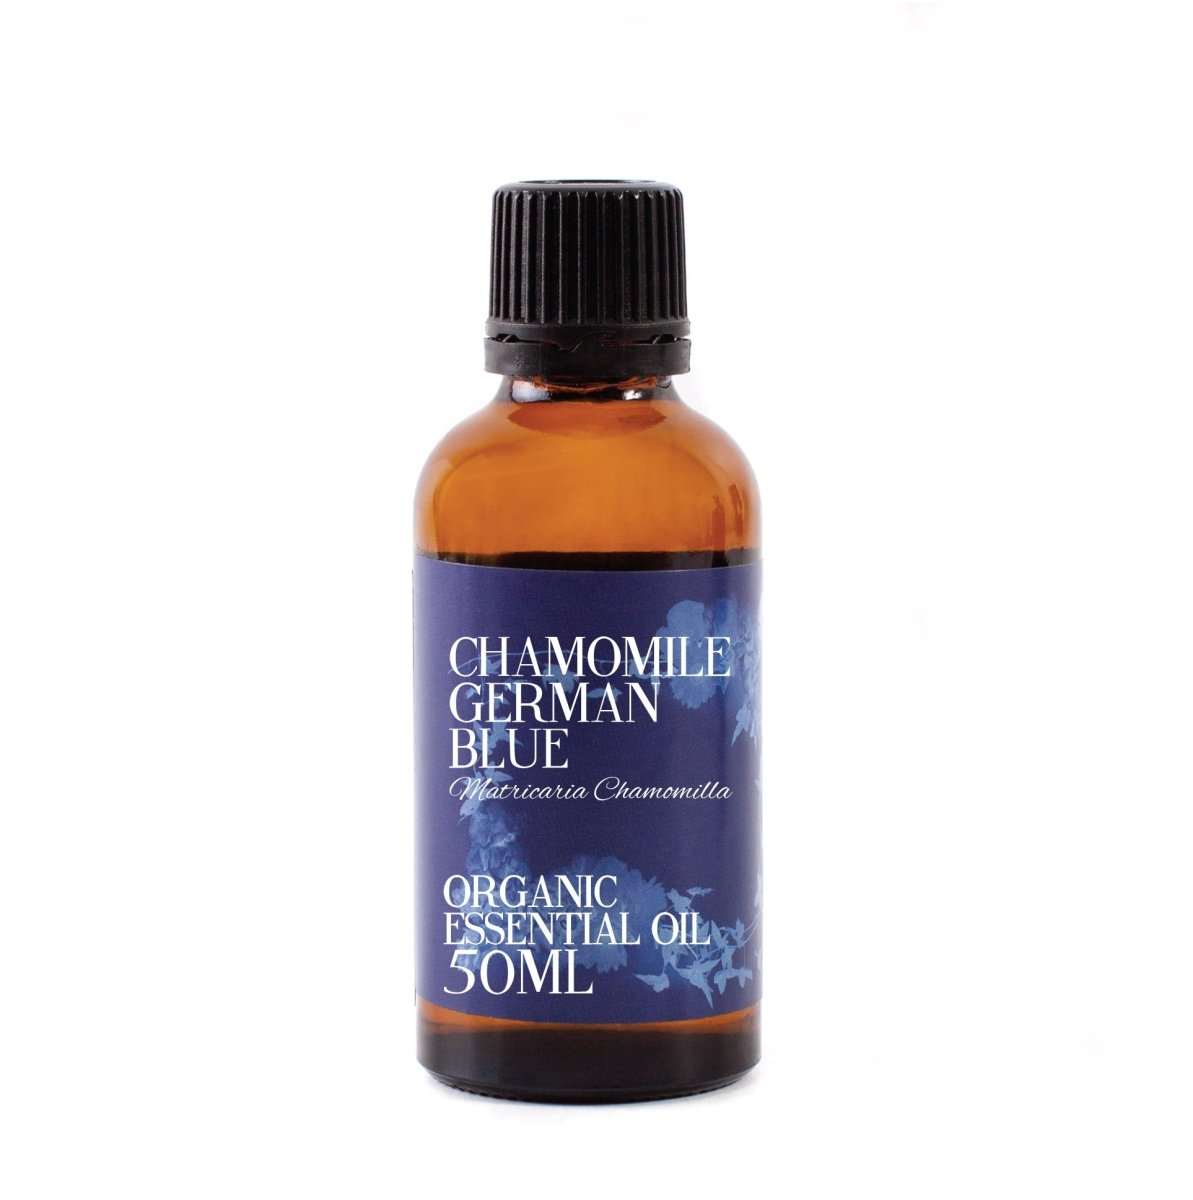 Chamomile German Blue Organic Essential Oil - Mystic Moments UK